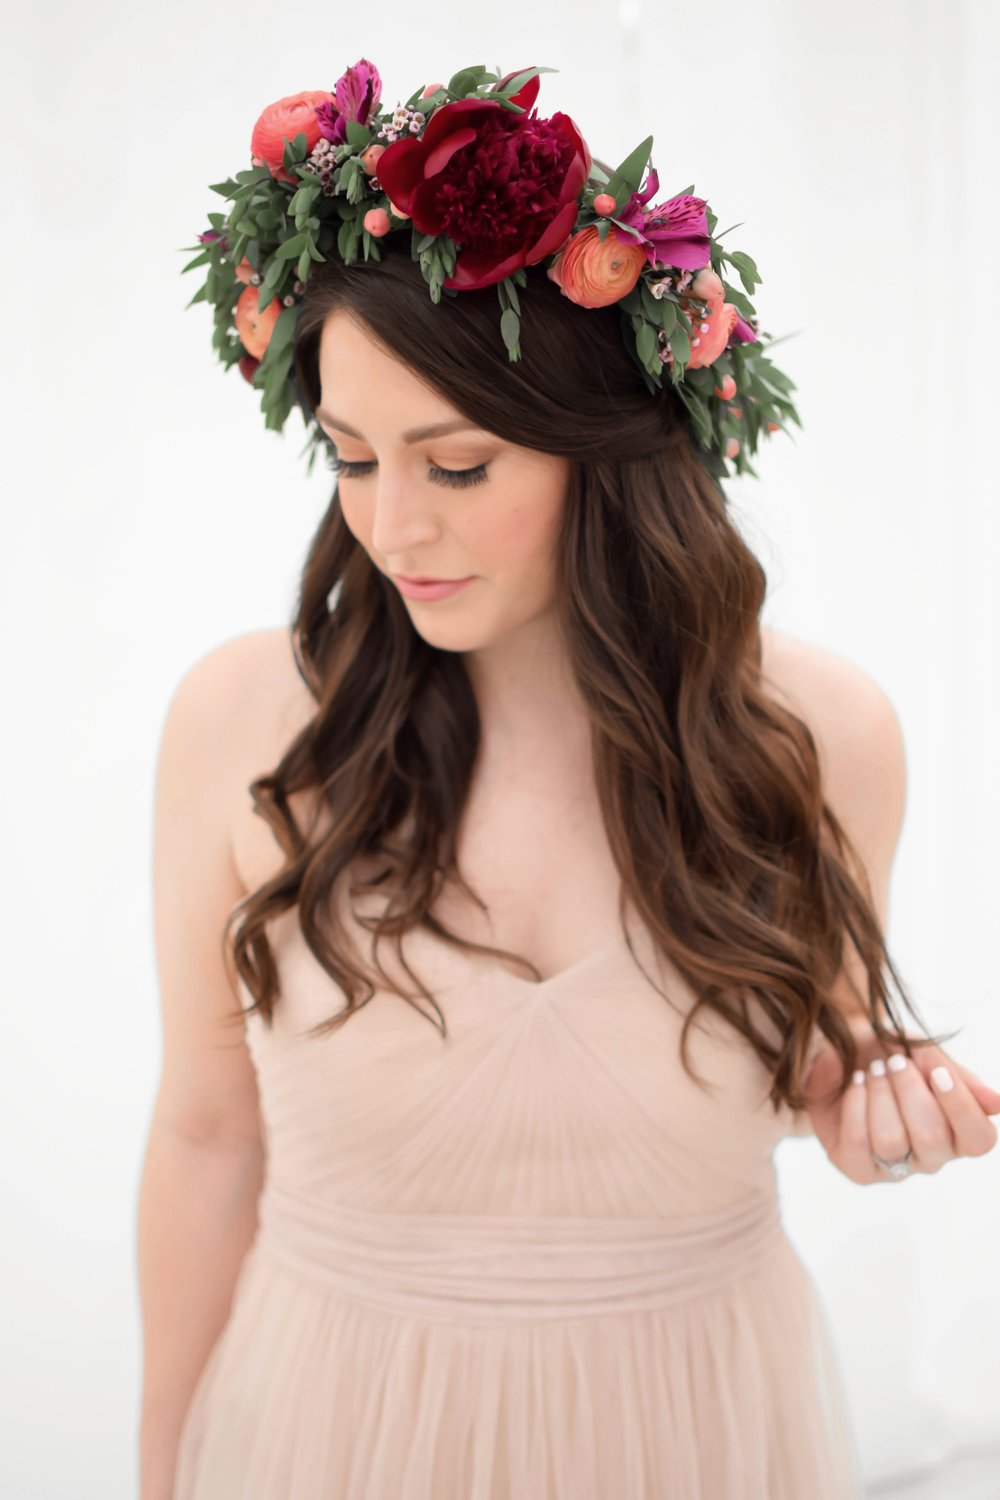 Bridal Looks for Less with eBay | Pine Barren Beauty | styled bridal shoot, bridal dress ideas, bridal party dress ideas, bhldn bridesmaid dress, tulle dress, flower crown, flower crown ideas, bridal flower crown, bridal hair, natural bridal makeup, boho bridal look